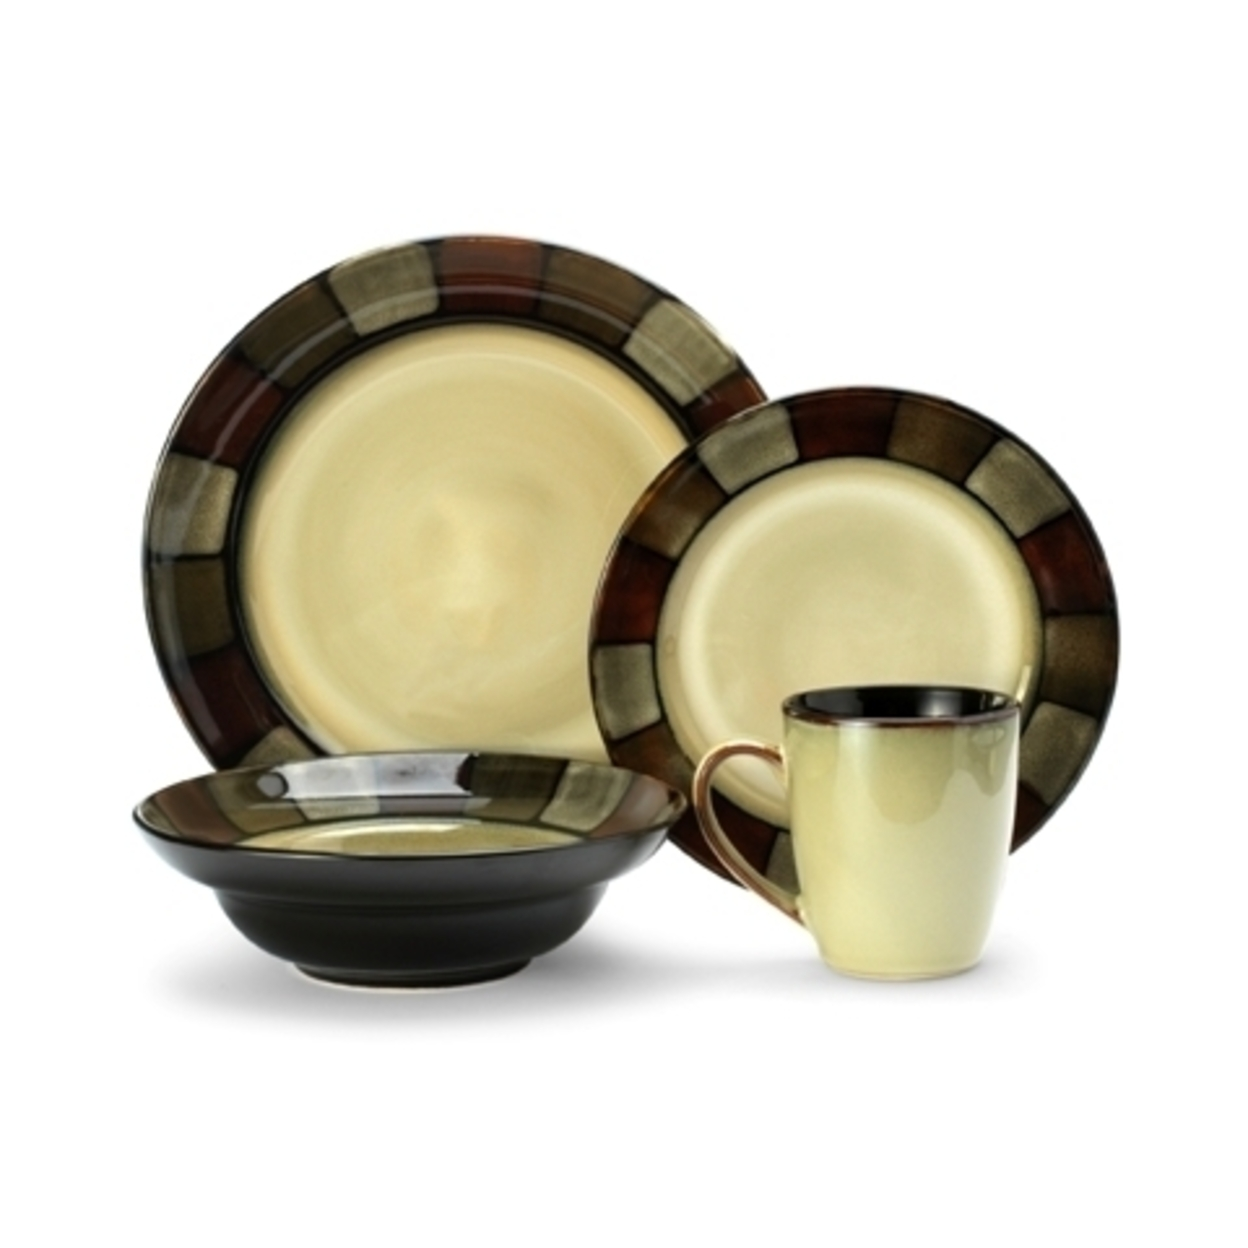 Pfaltzgraff Everyday Taos 16 Pieces Dinnerware set 596e25052a00e4592b63dc2d